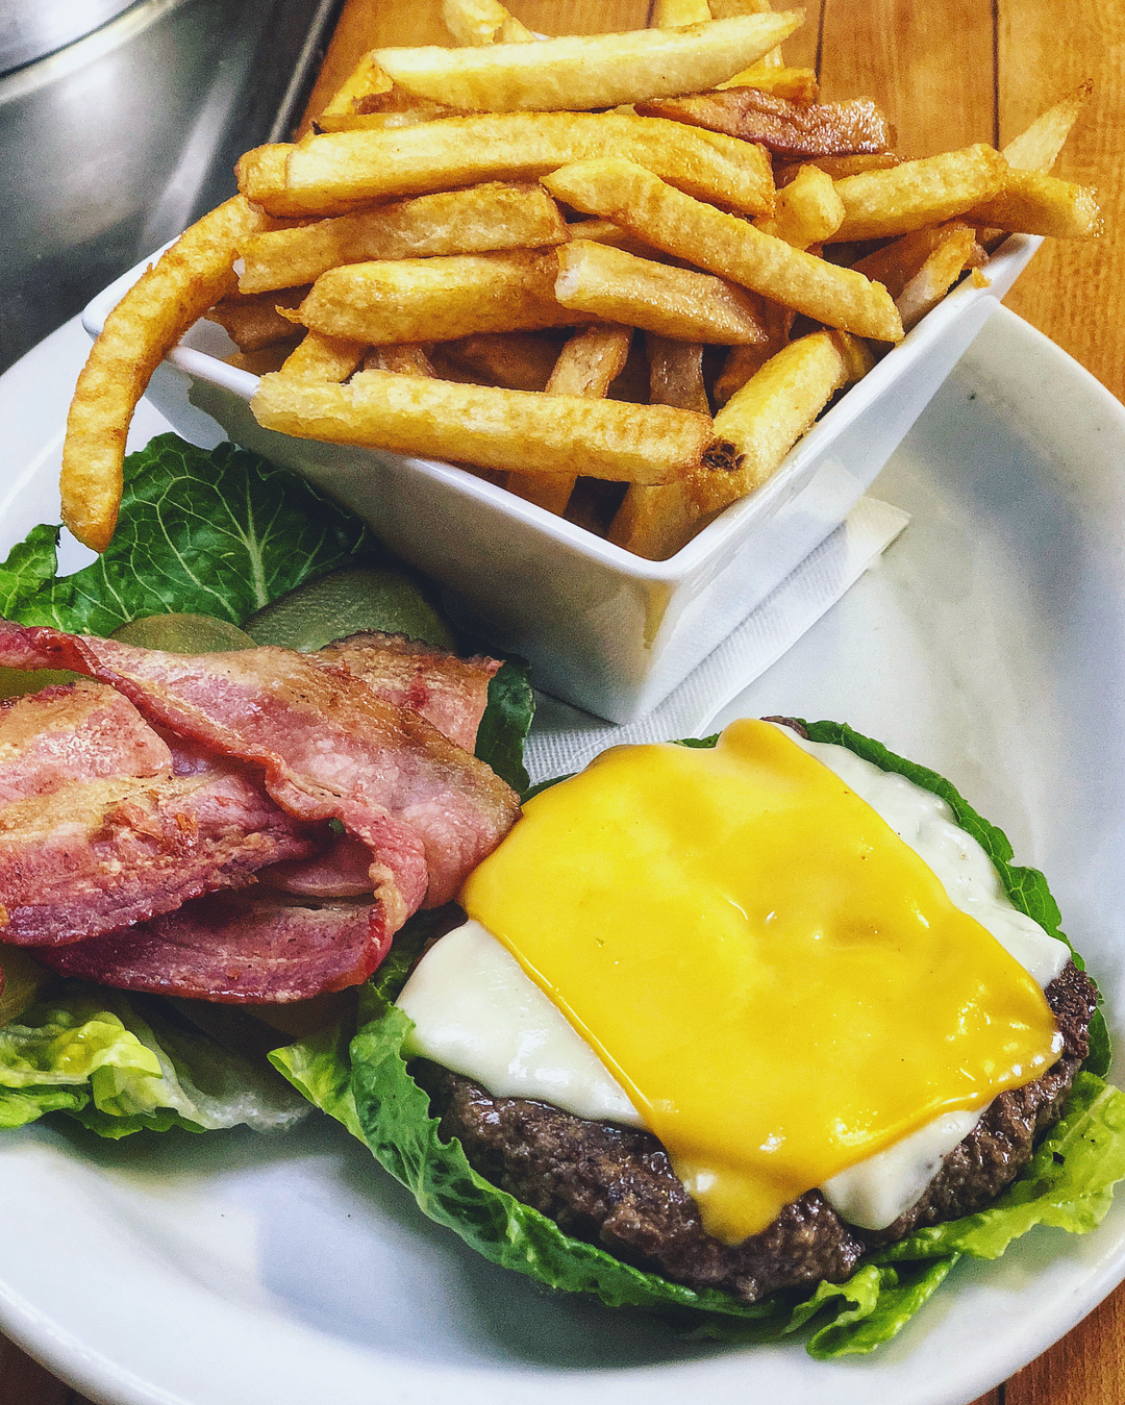 Gluten Free Myrt Burger - Made with a Romain Lettuce Bun also ask about our Gluten Free Pizza Dough.